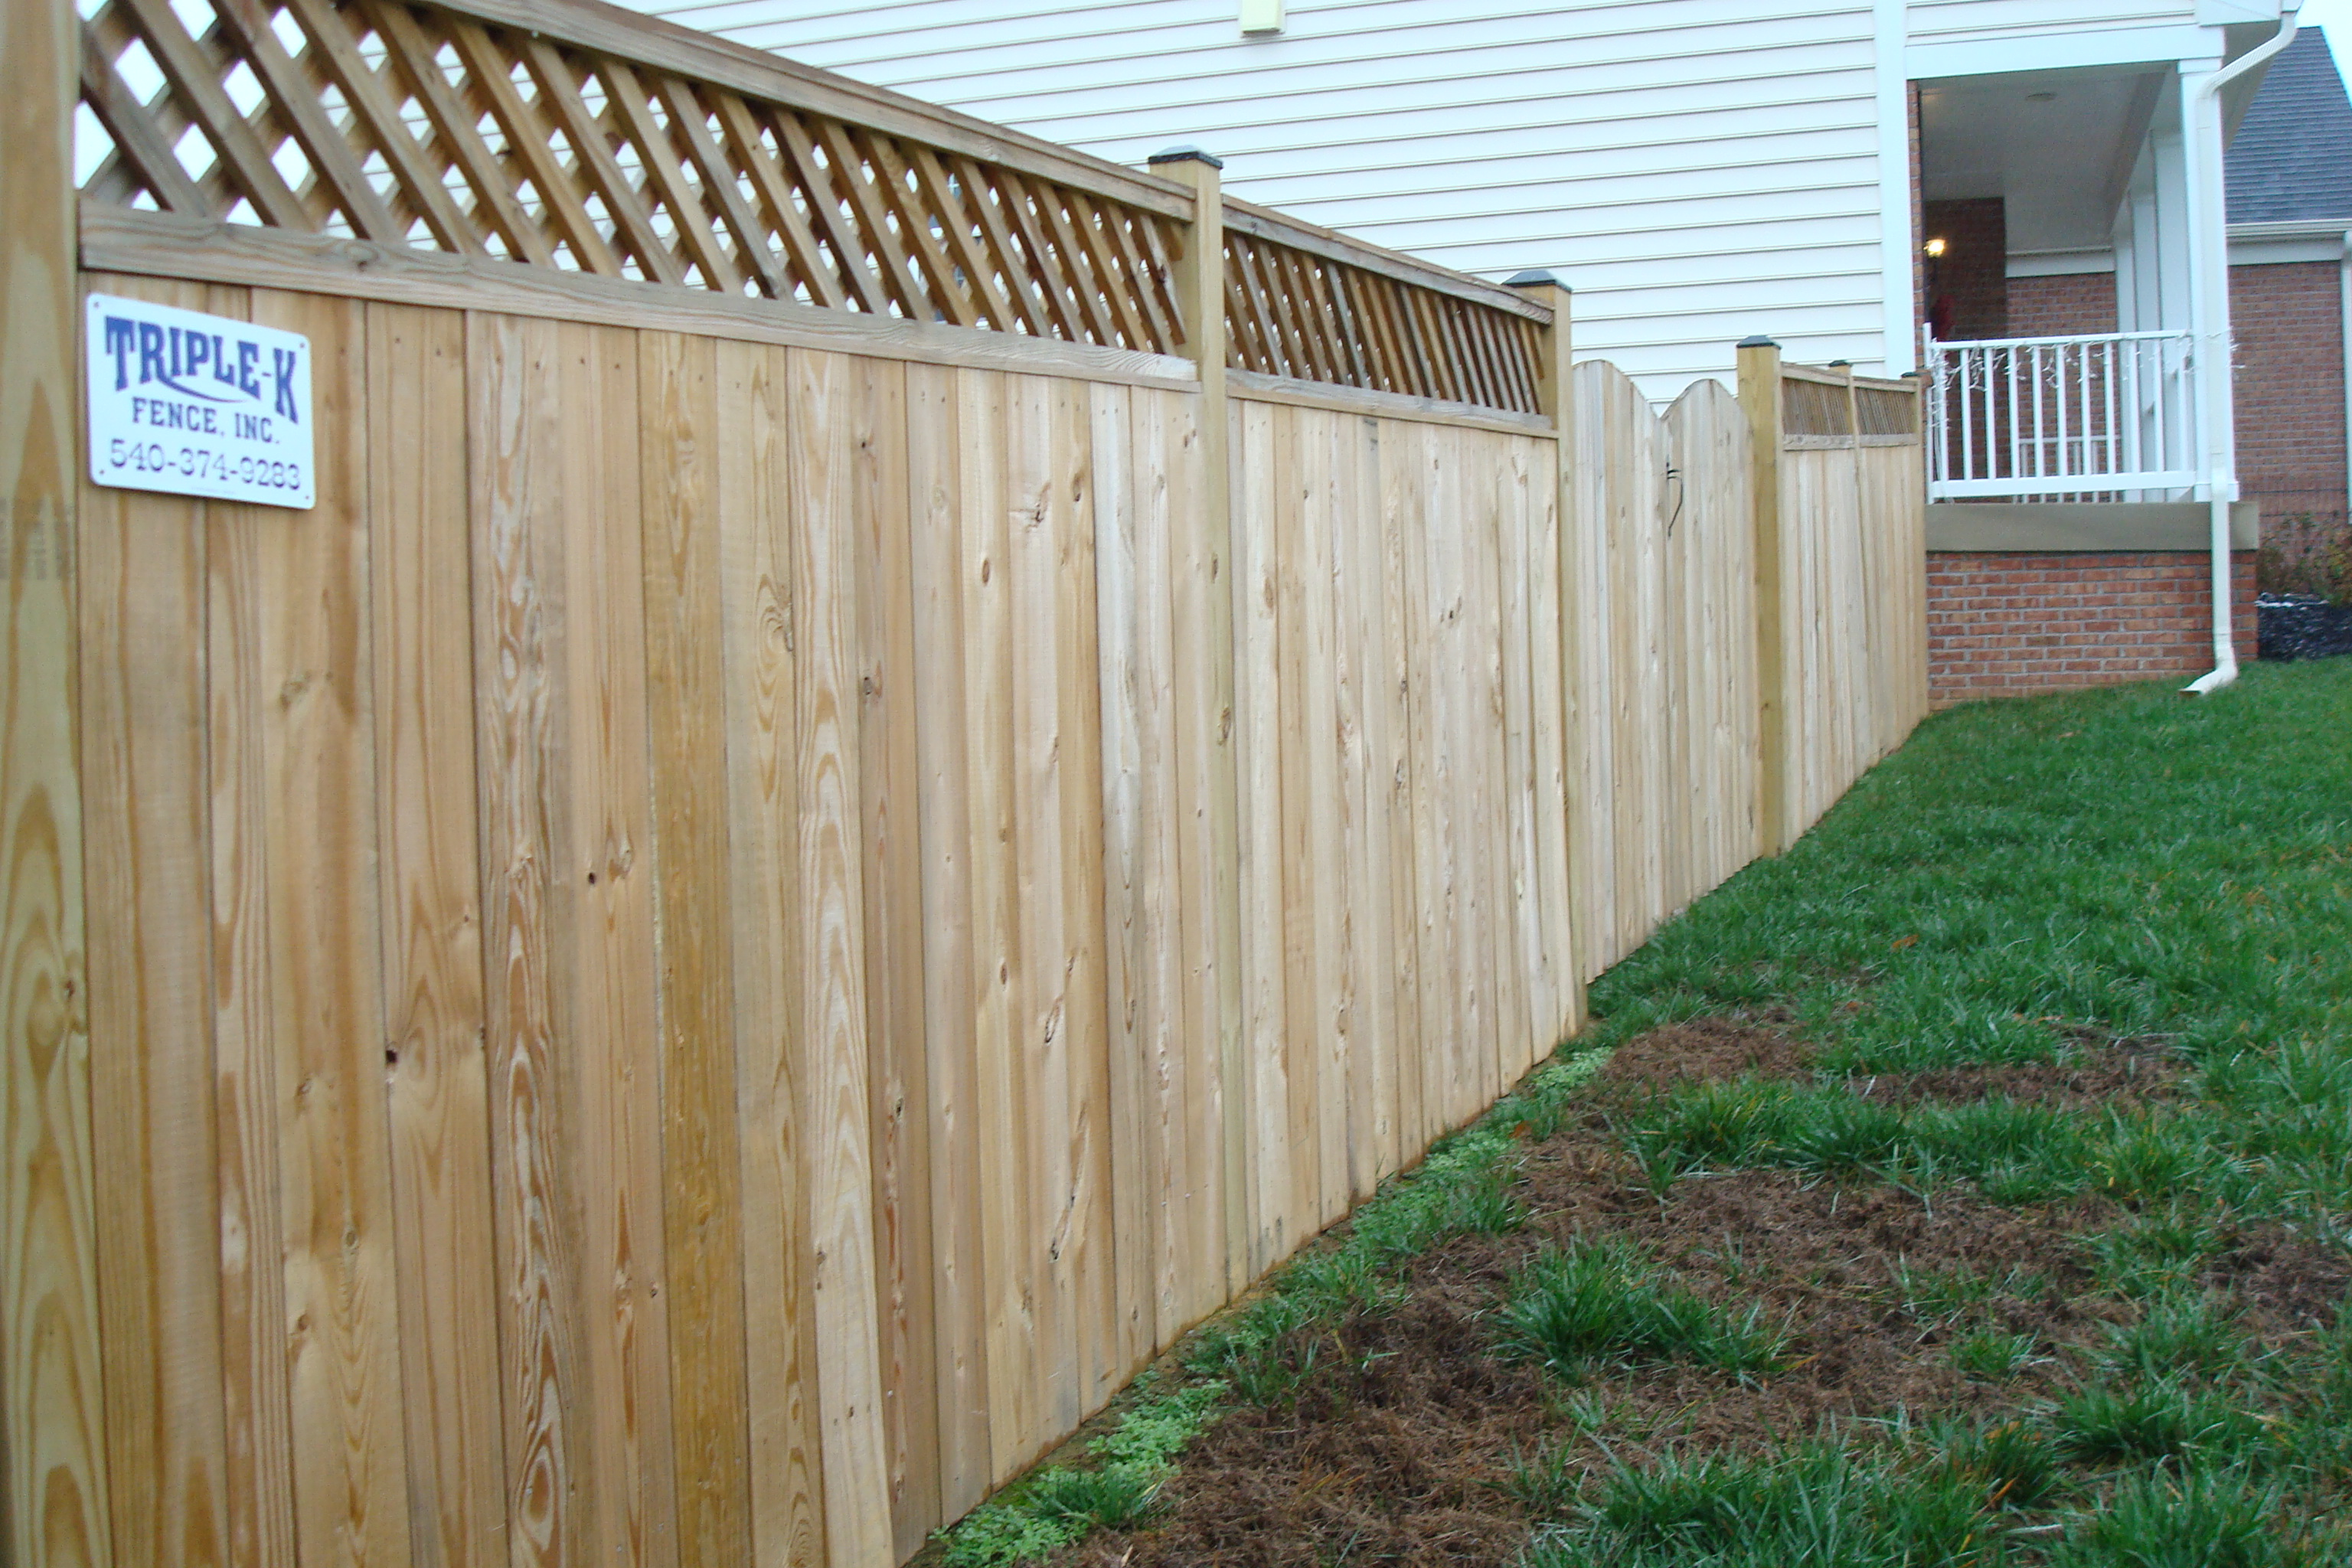 Wood fences triple k fence lattice top privacy with caps drive gate baanklon Choice Image